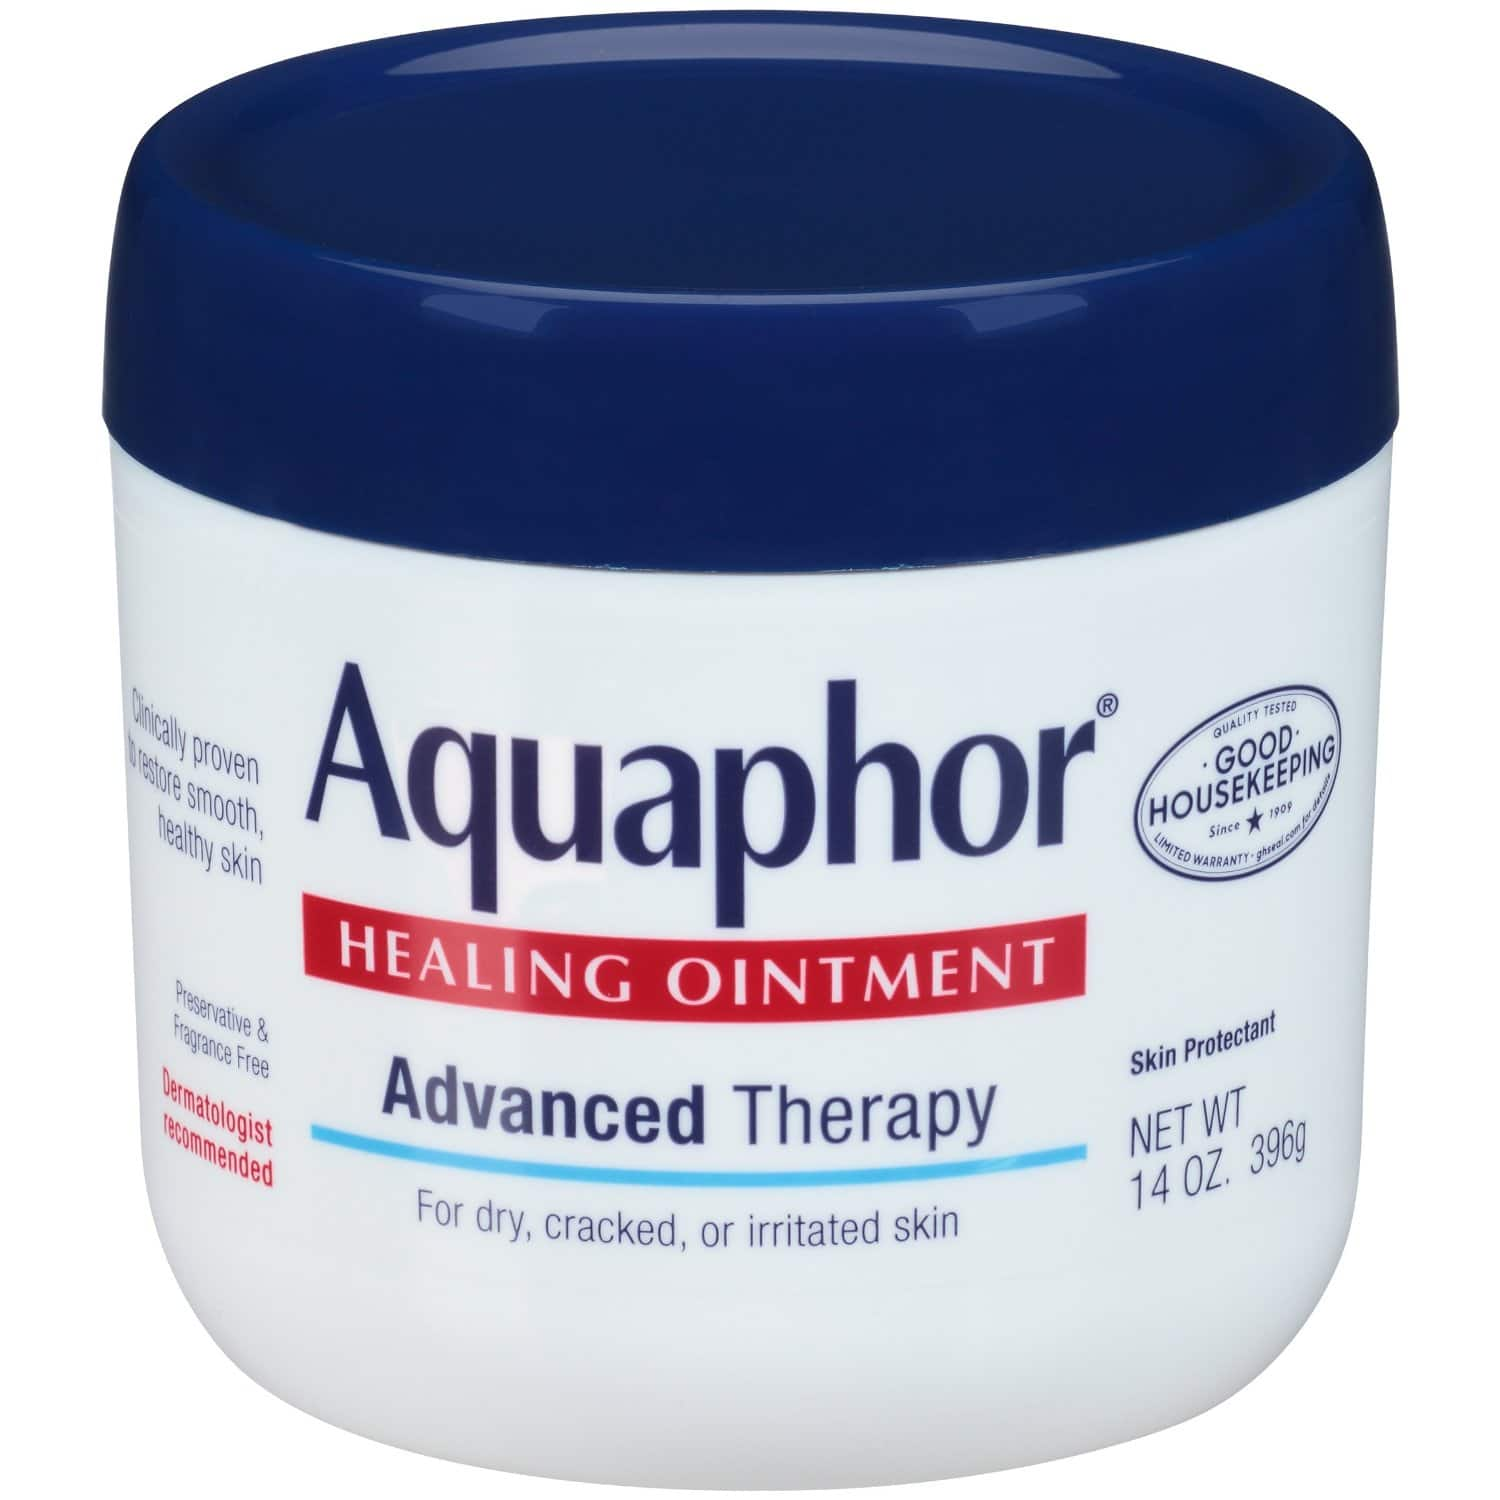 14oz Aquaphor Healing Ointment $8.25 or less + Free Shipping